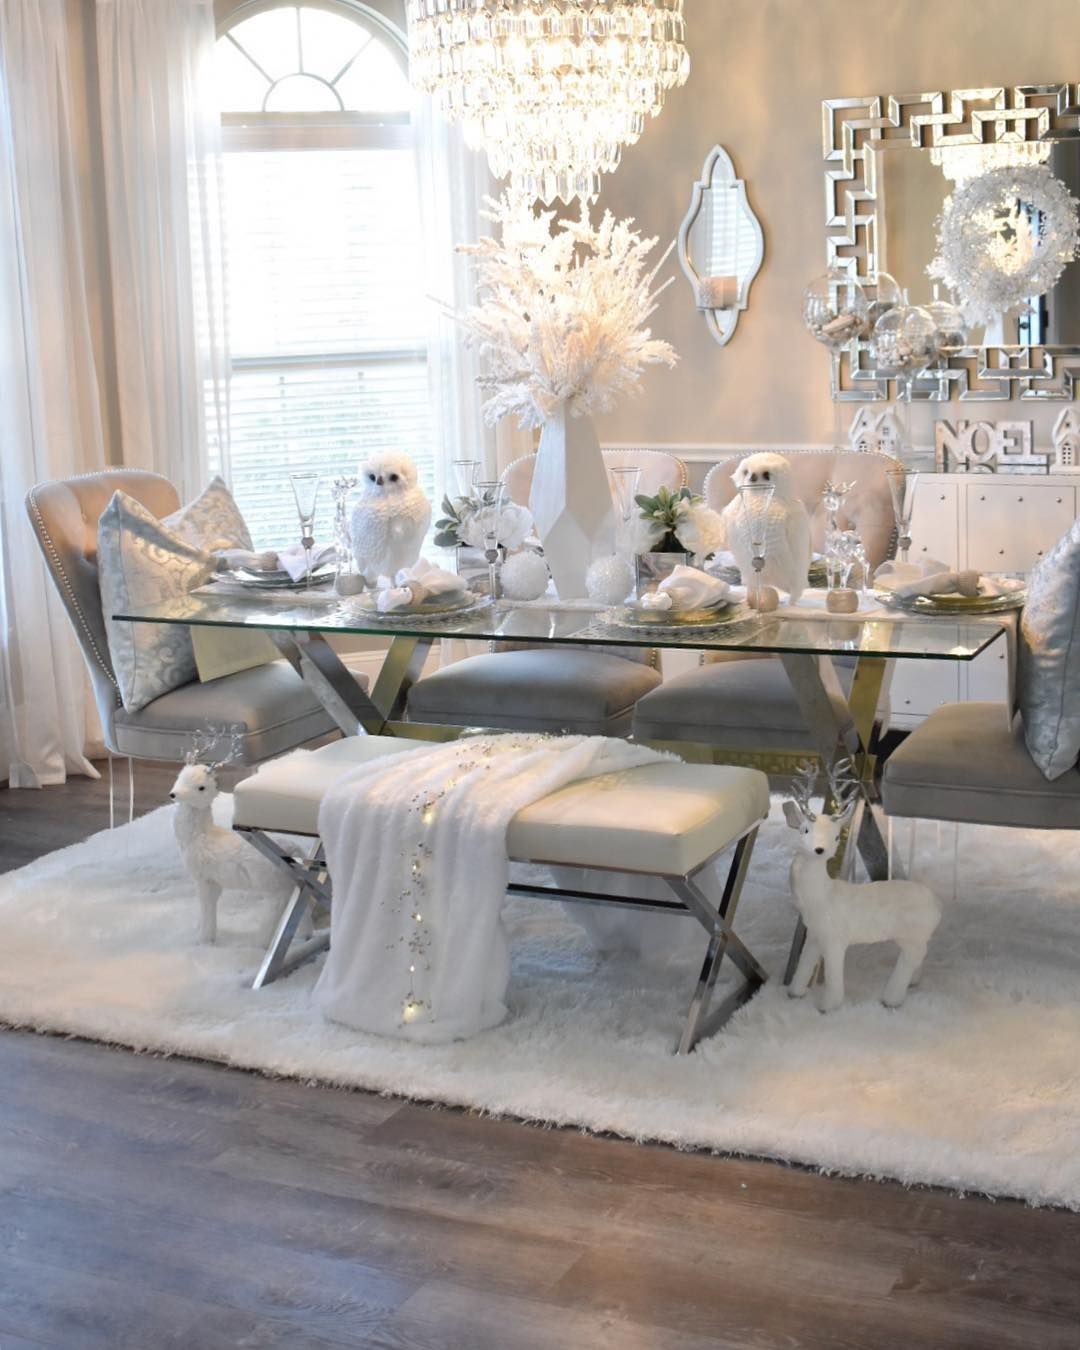 Happy Sunday Once I Got This Super Soft White Shag Rug For My Dining Room From Wellwovenrugs Z Dining Room Rug Dining Room Table Decor Dinning Room Decor